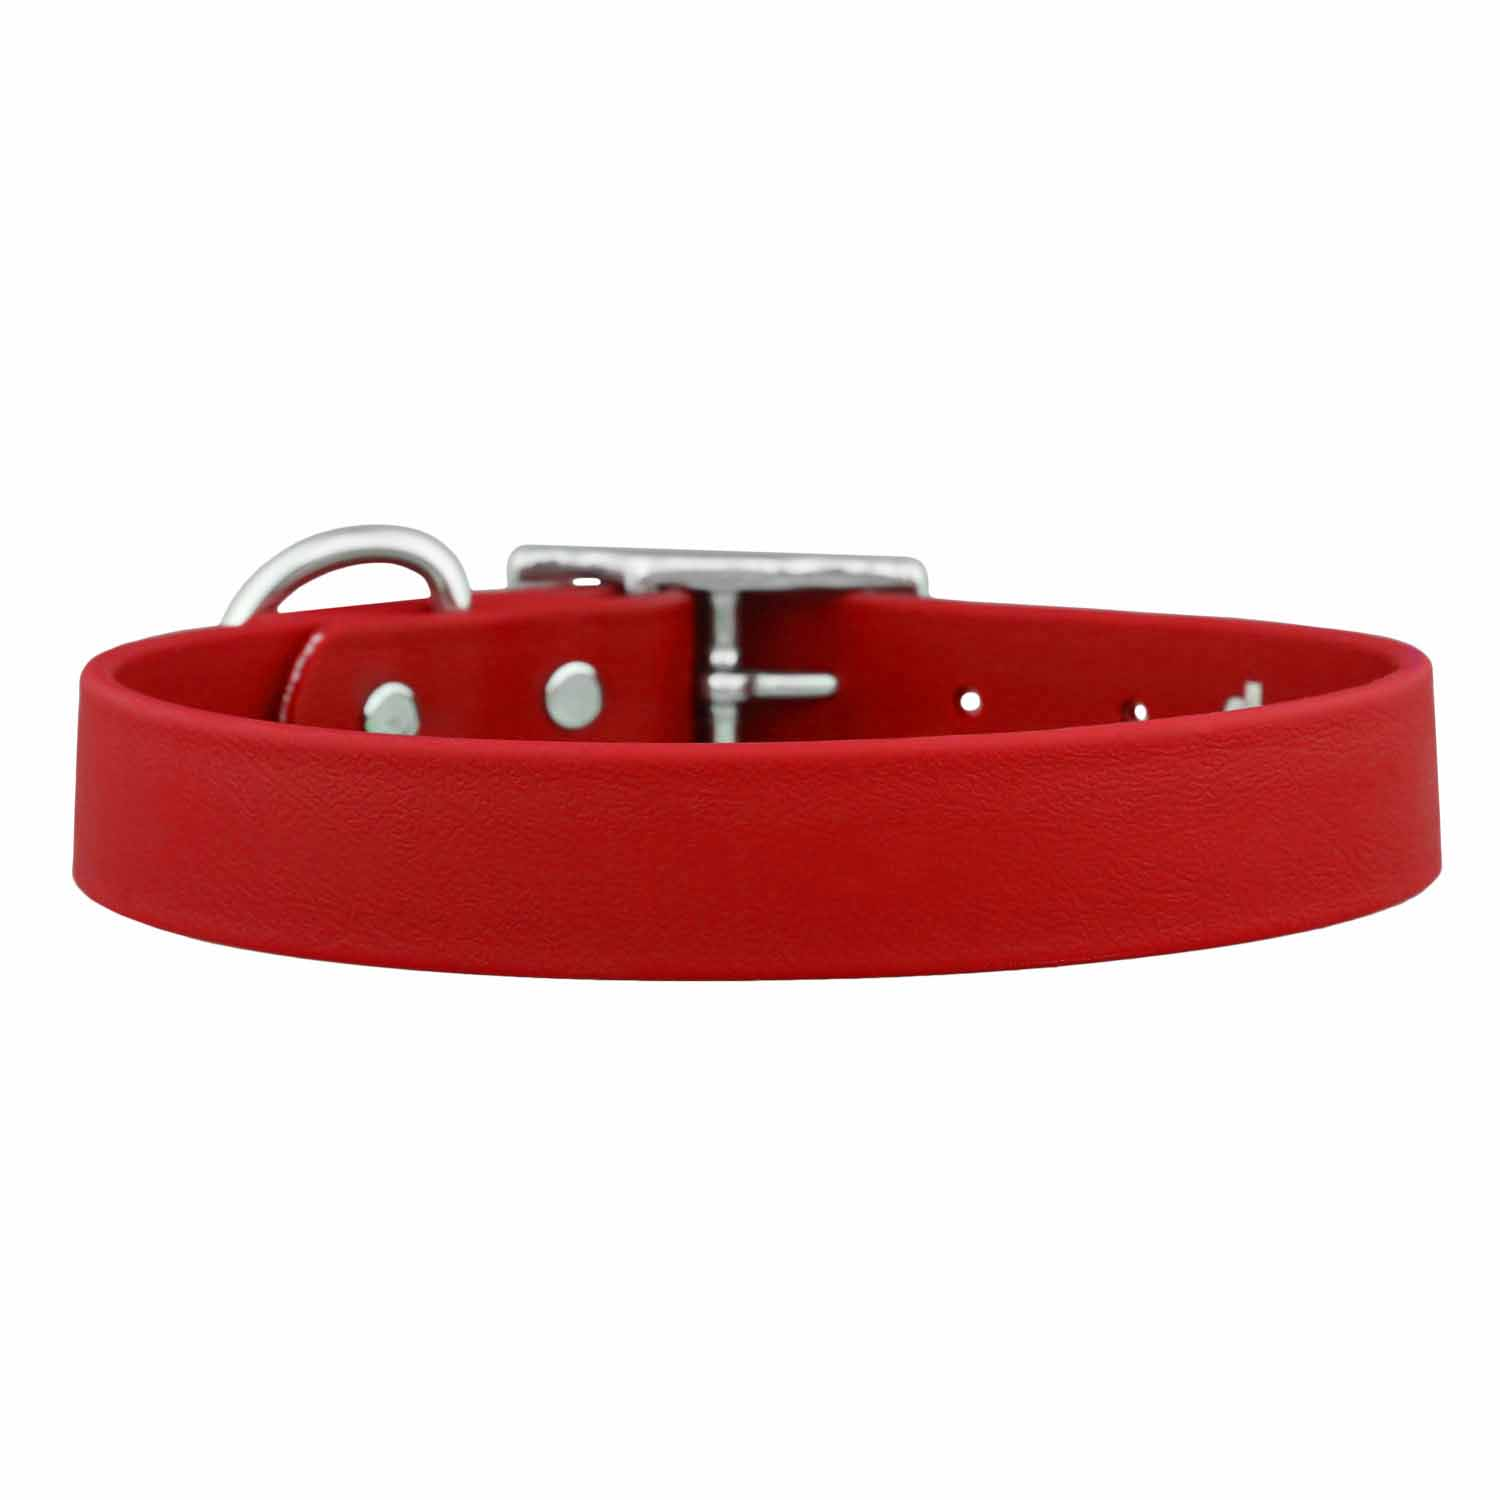 Waterproof Soft Grip Dog Collar Red